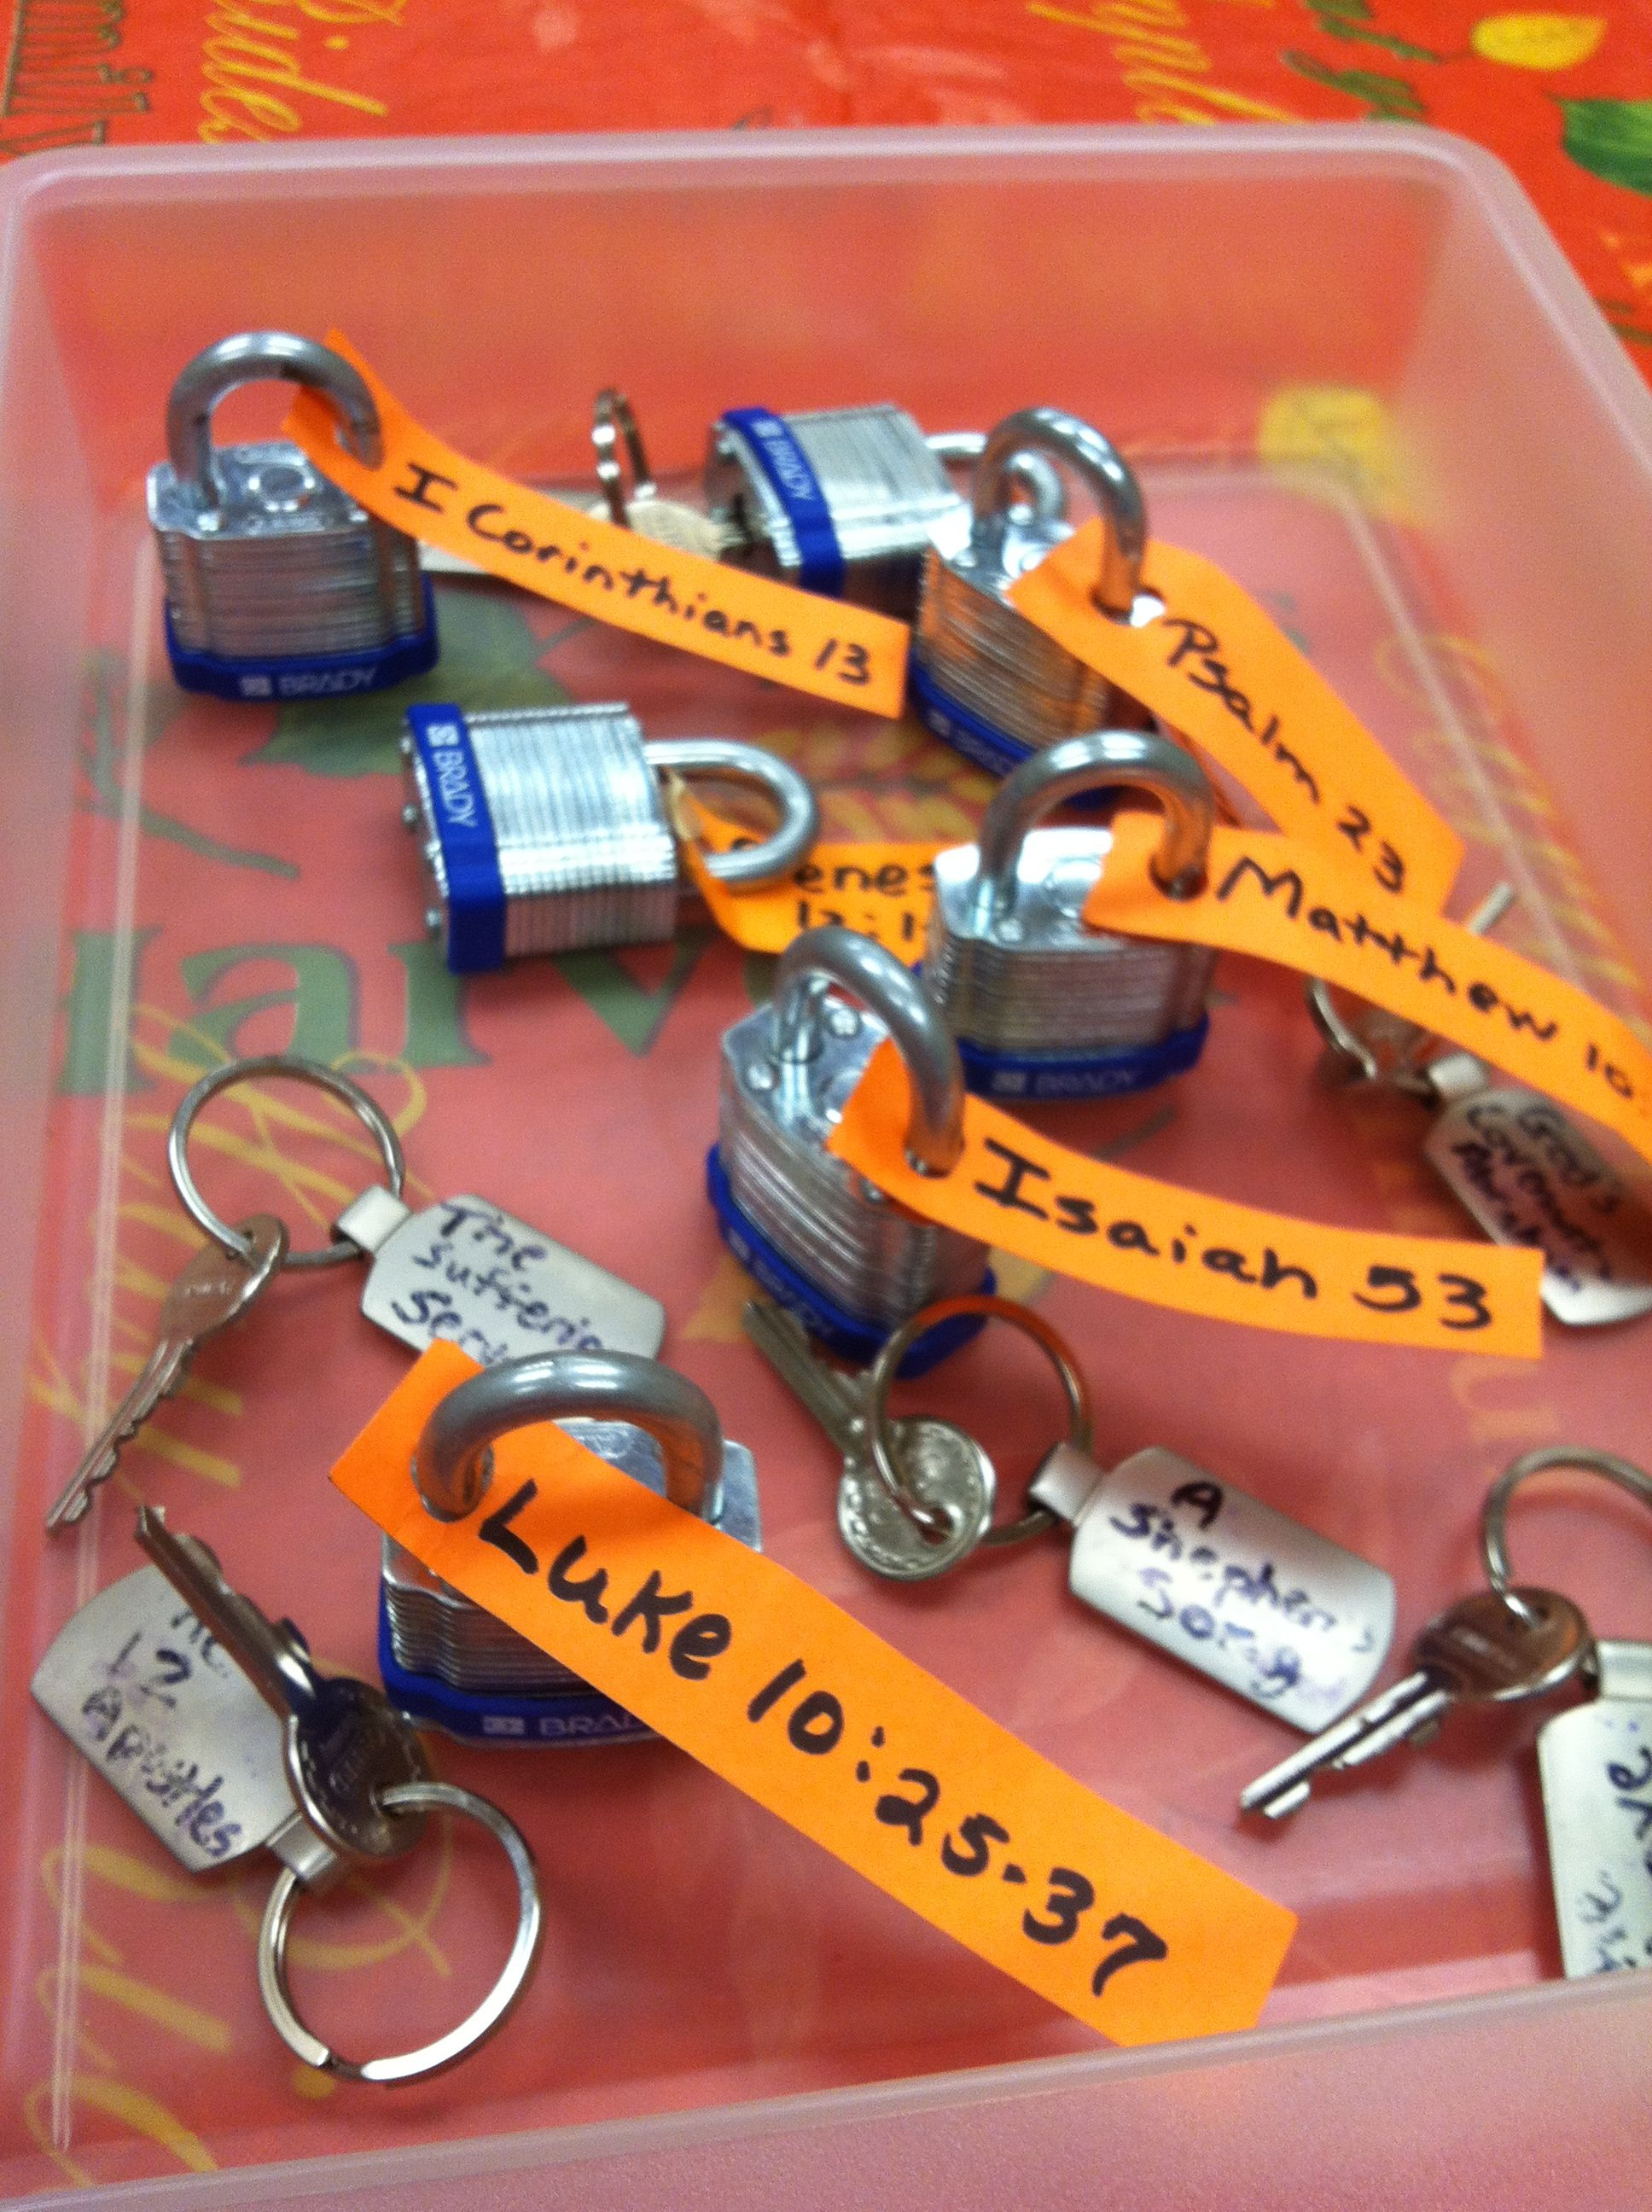 This Might Be Good For The Last Day Bible Activity Bible Drill Key Passage Locks And Keys